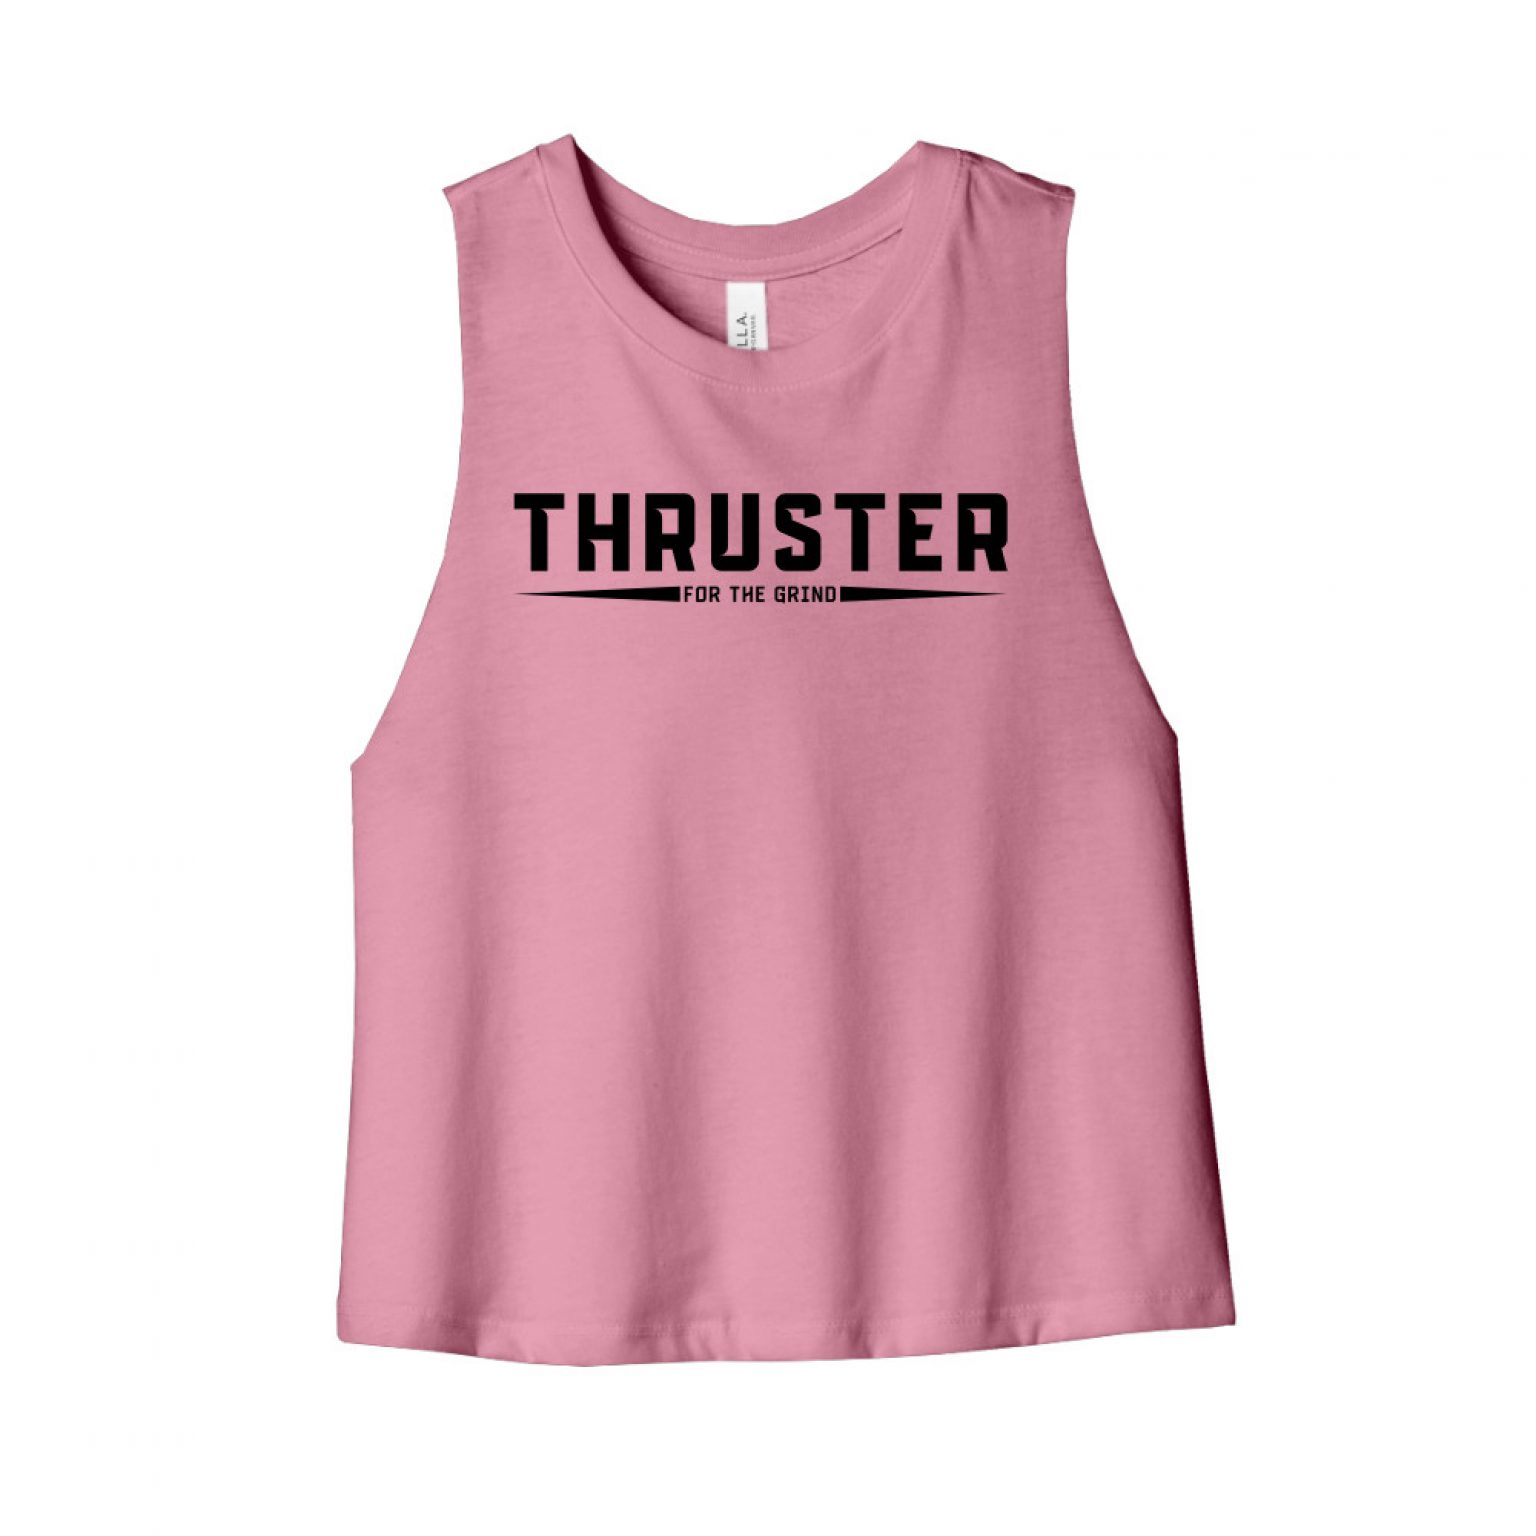 Thruster cropped mauve